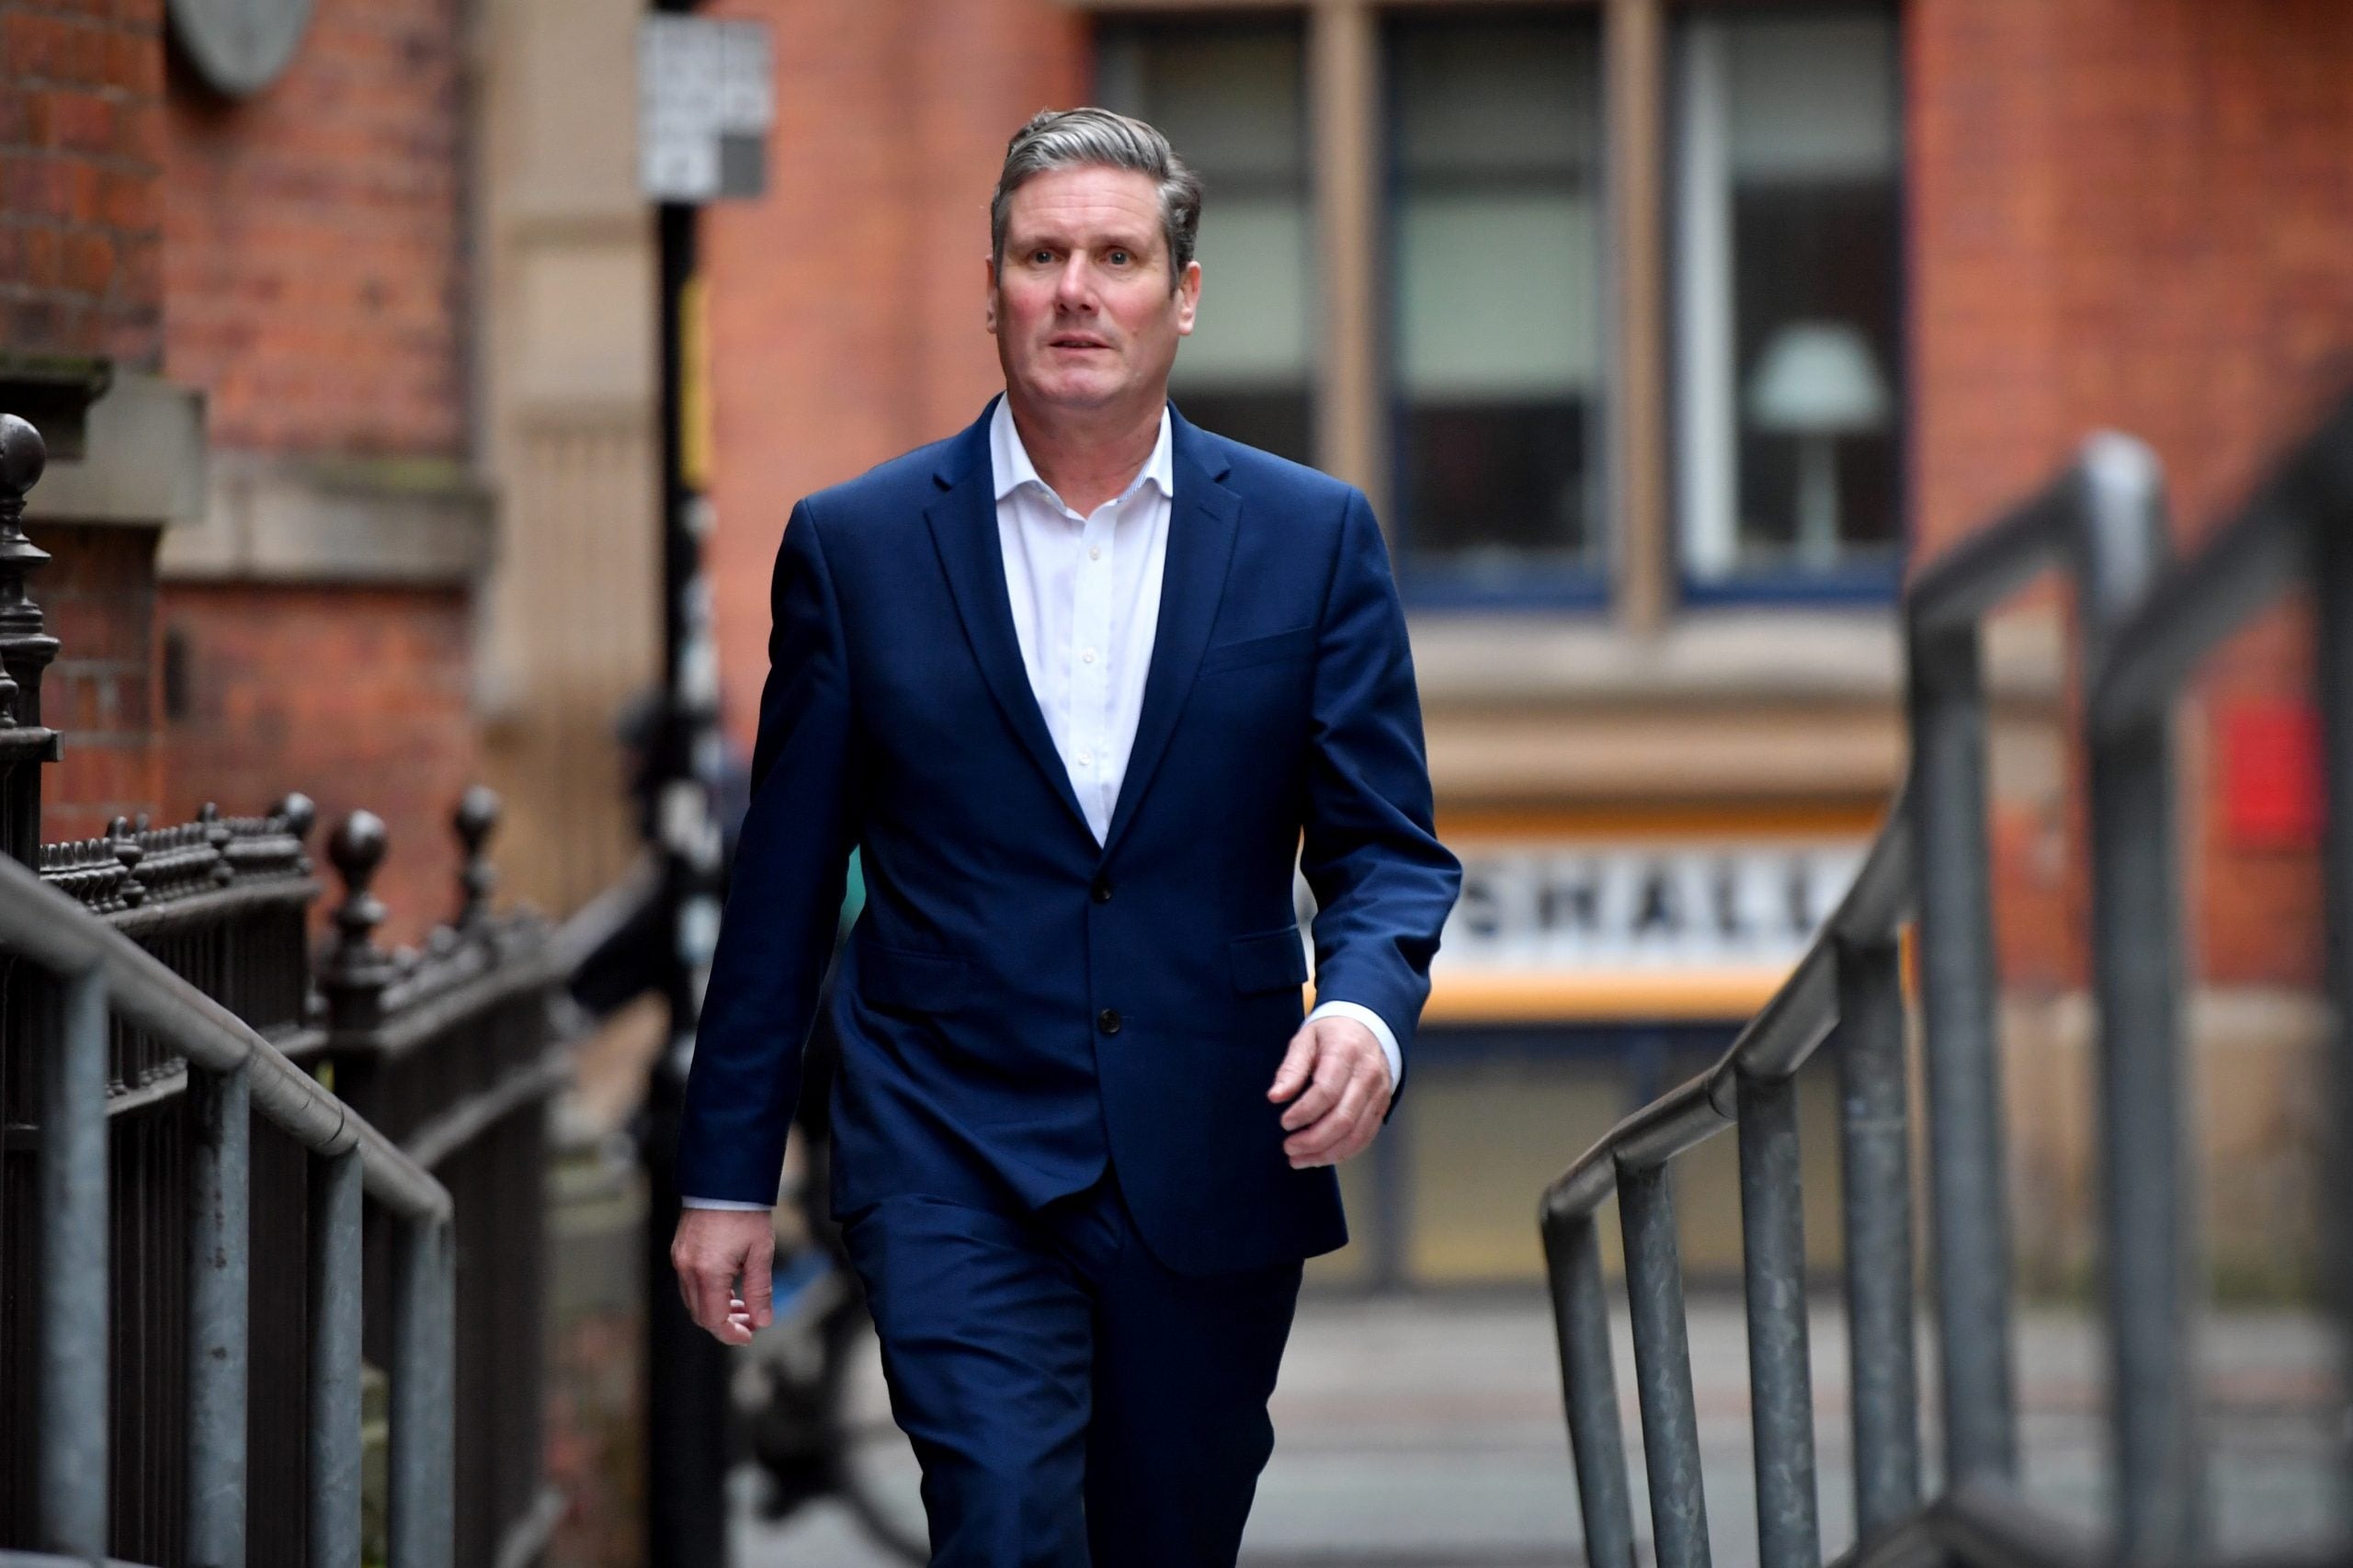 Keir Starmer is the favourite to be Labour leader, but the party's  ruling faction may have other plans